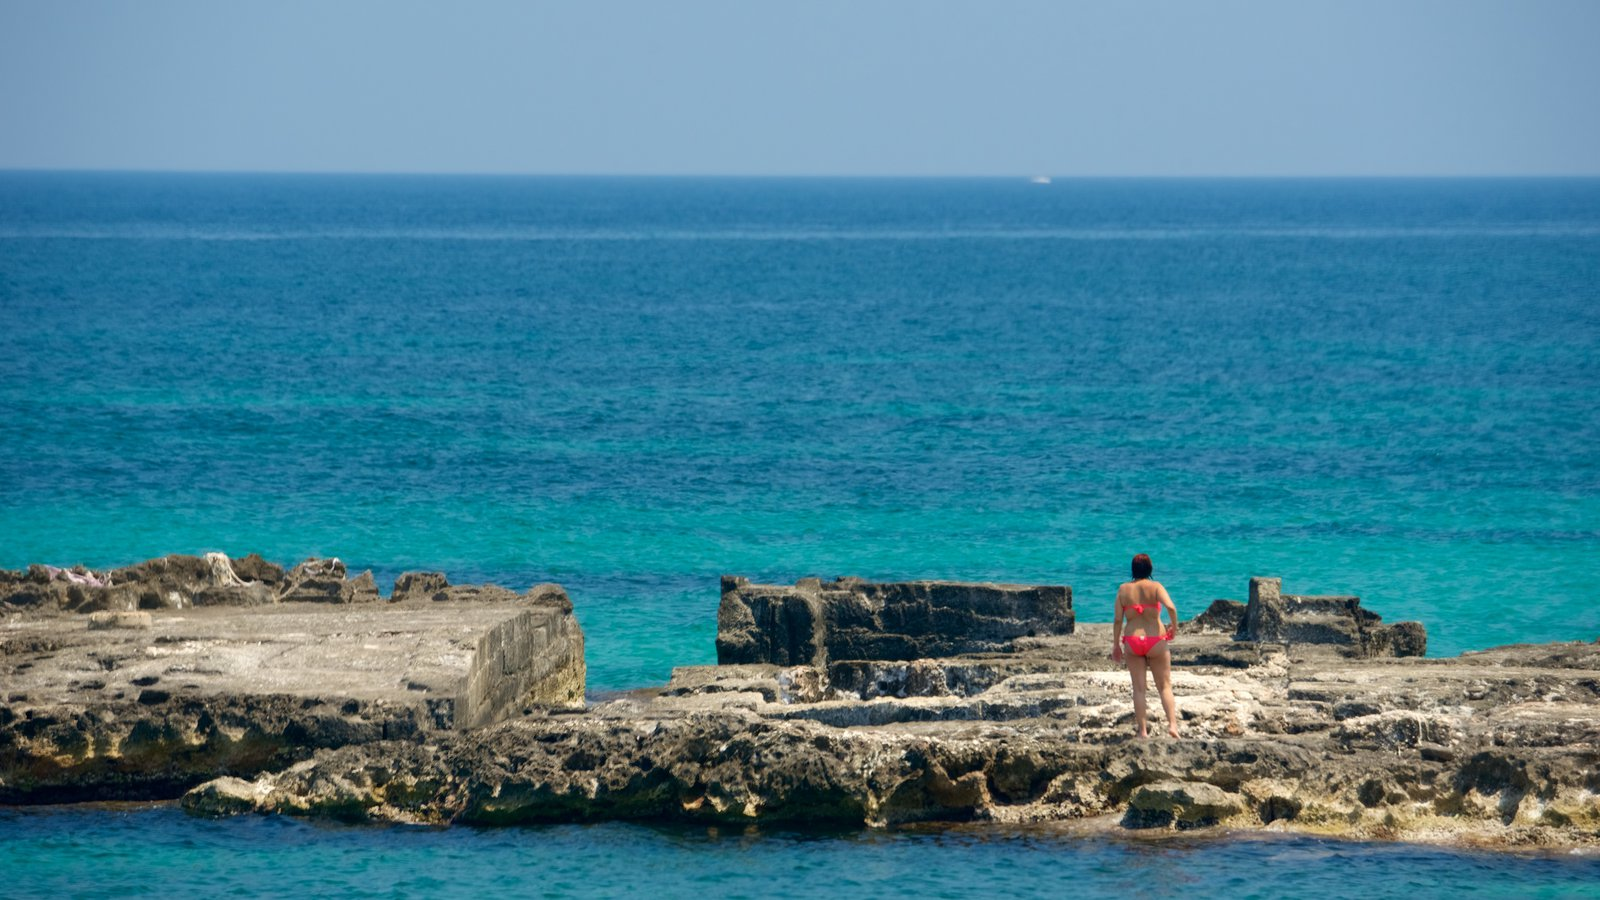 Monopoli featuring rocky coastline as well as an individual femail